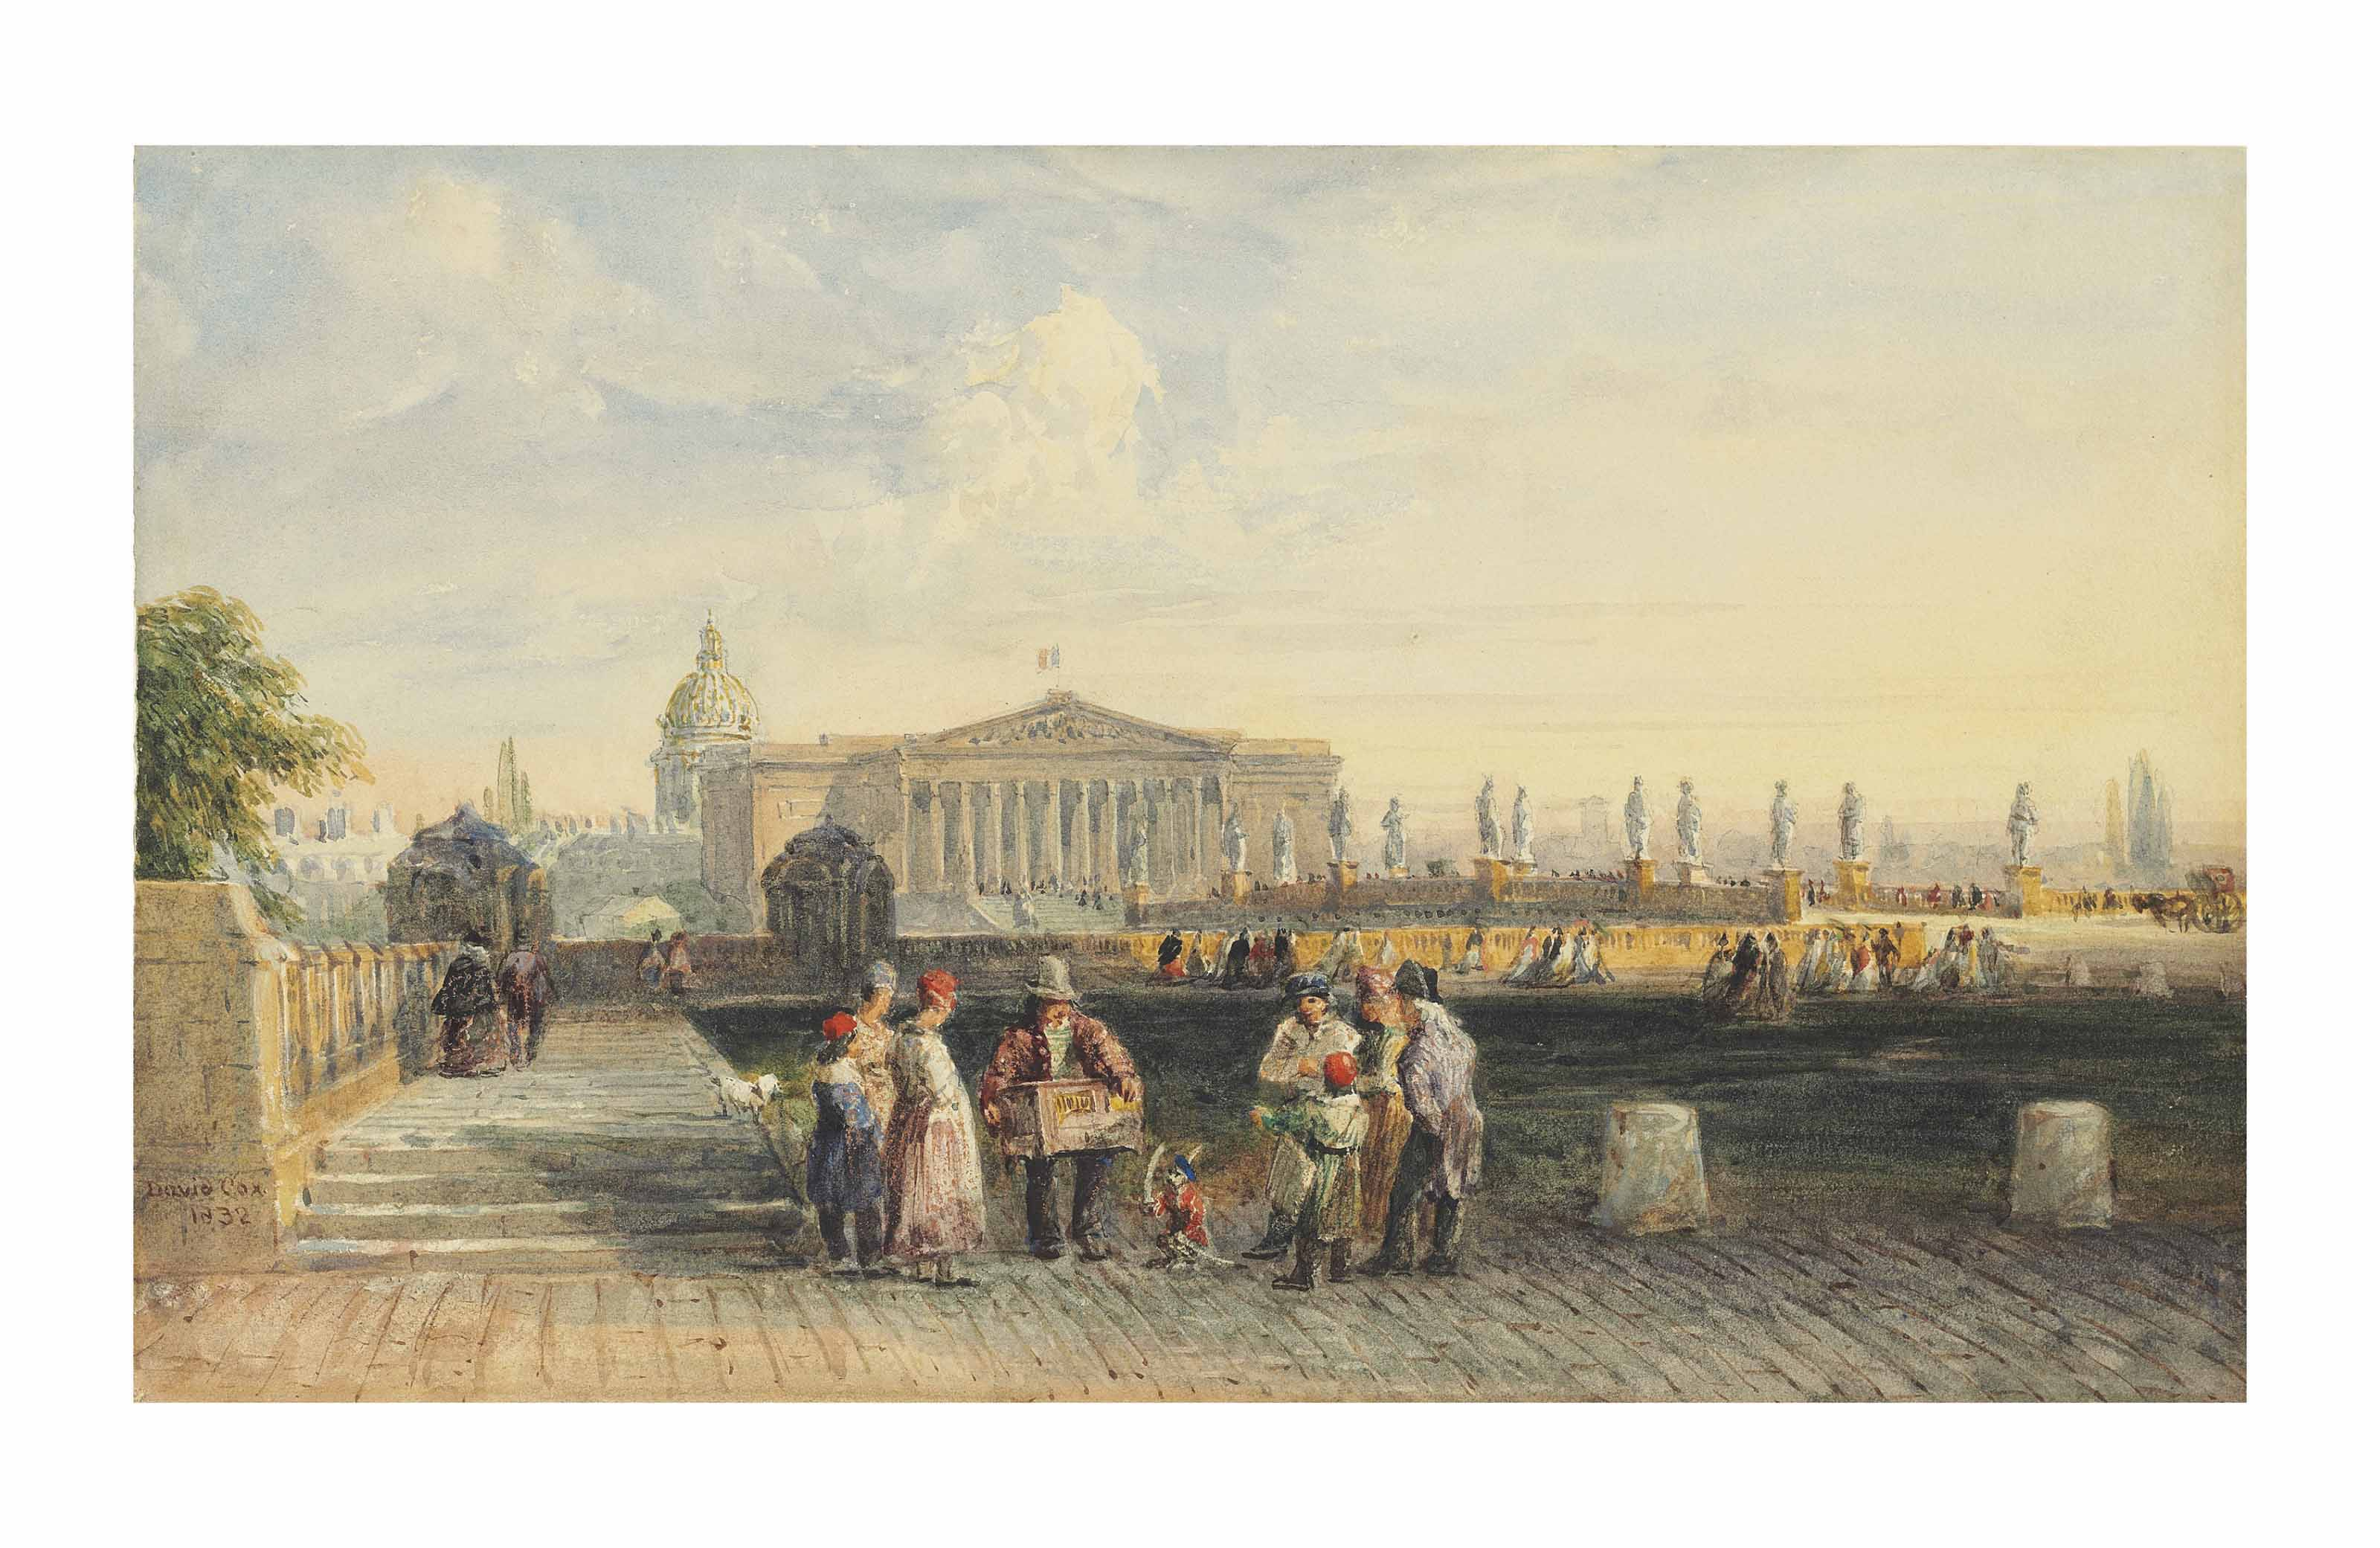 L'Assemblée Nationale with Les Invalides beyond, Paris, with a group around a street entertainer with his monkey in hat and red coat, holding a bow